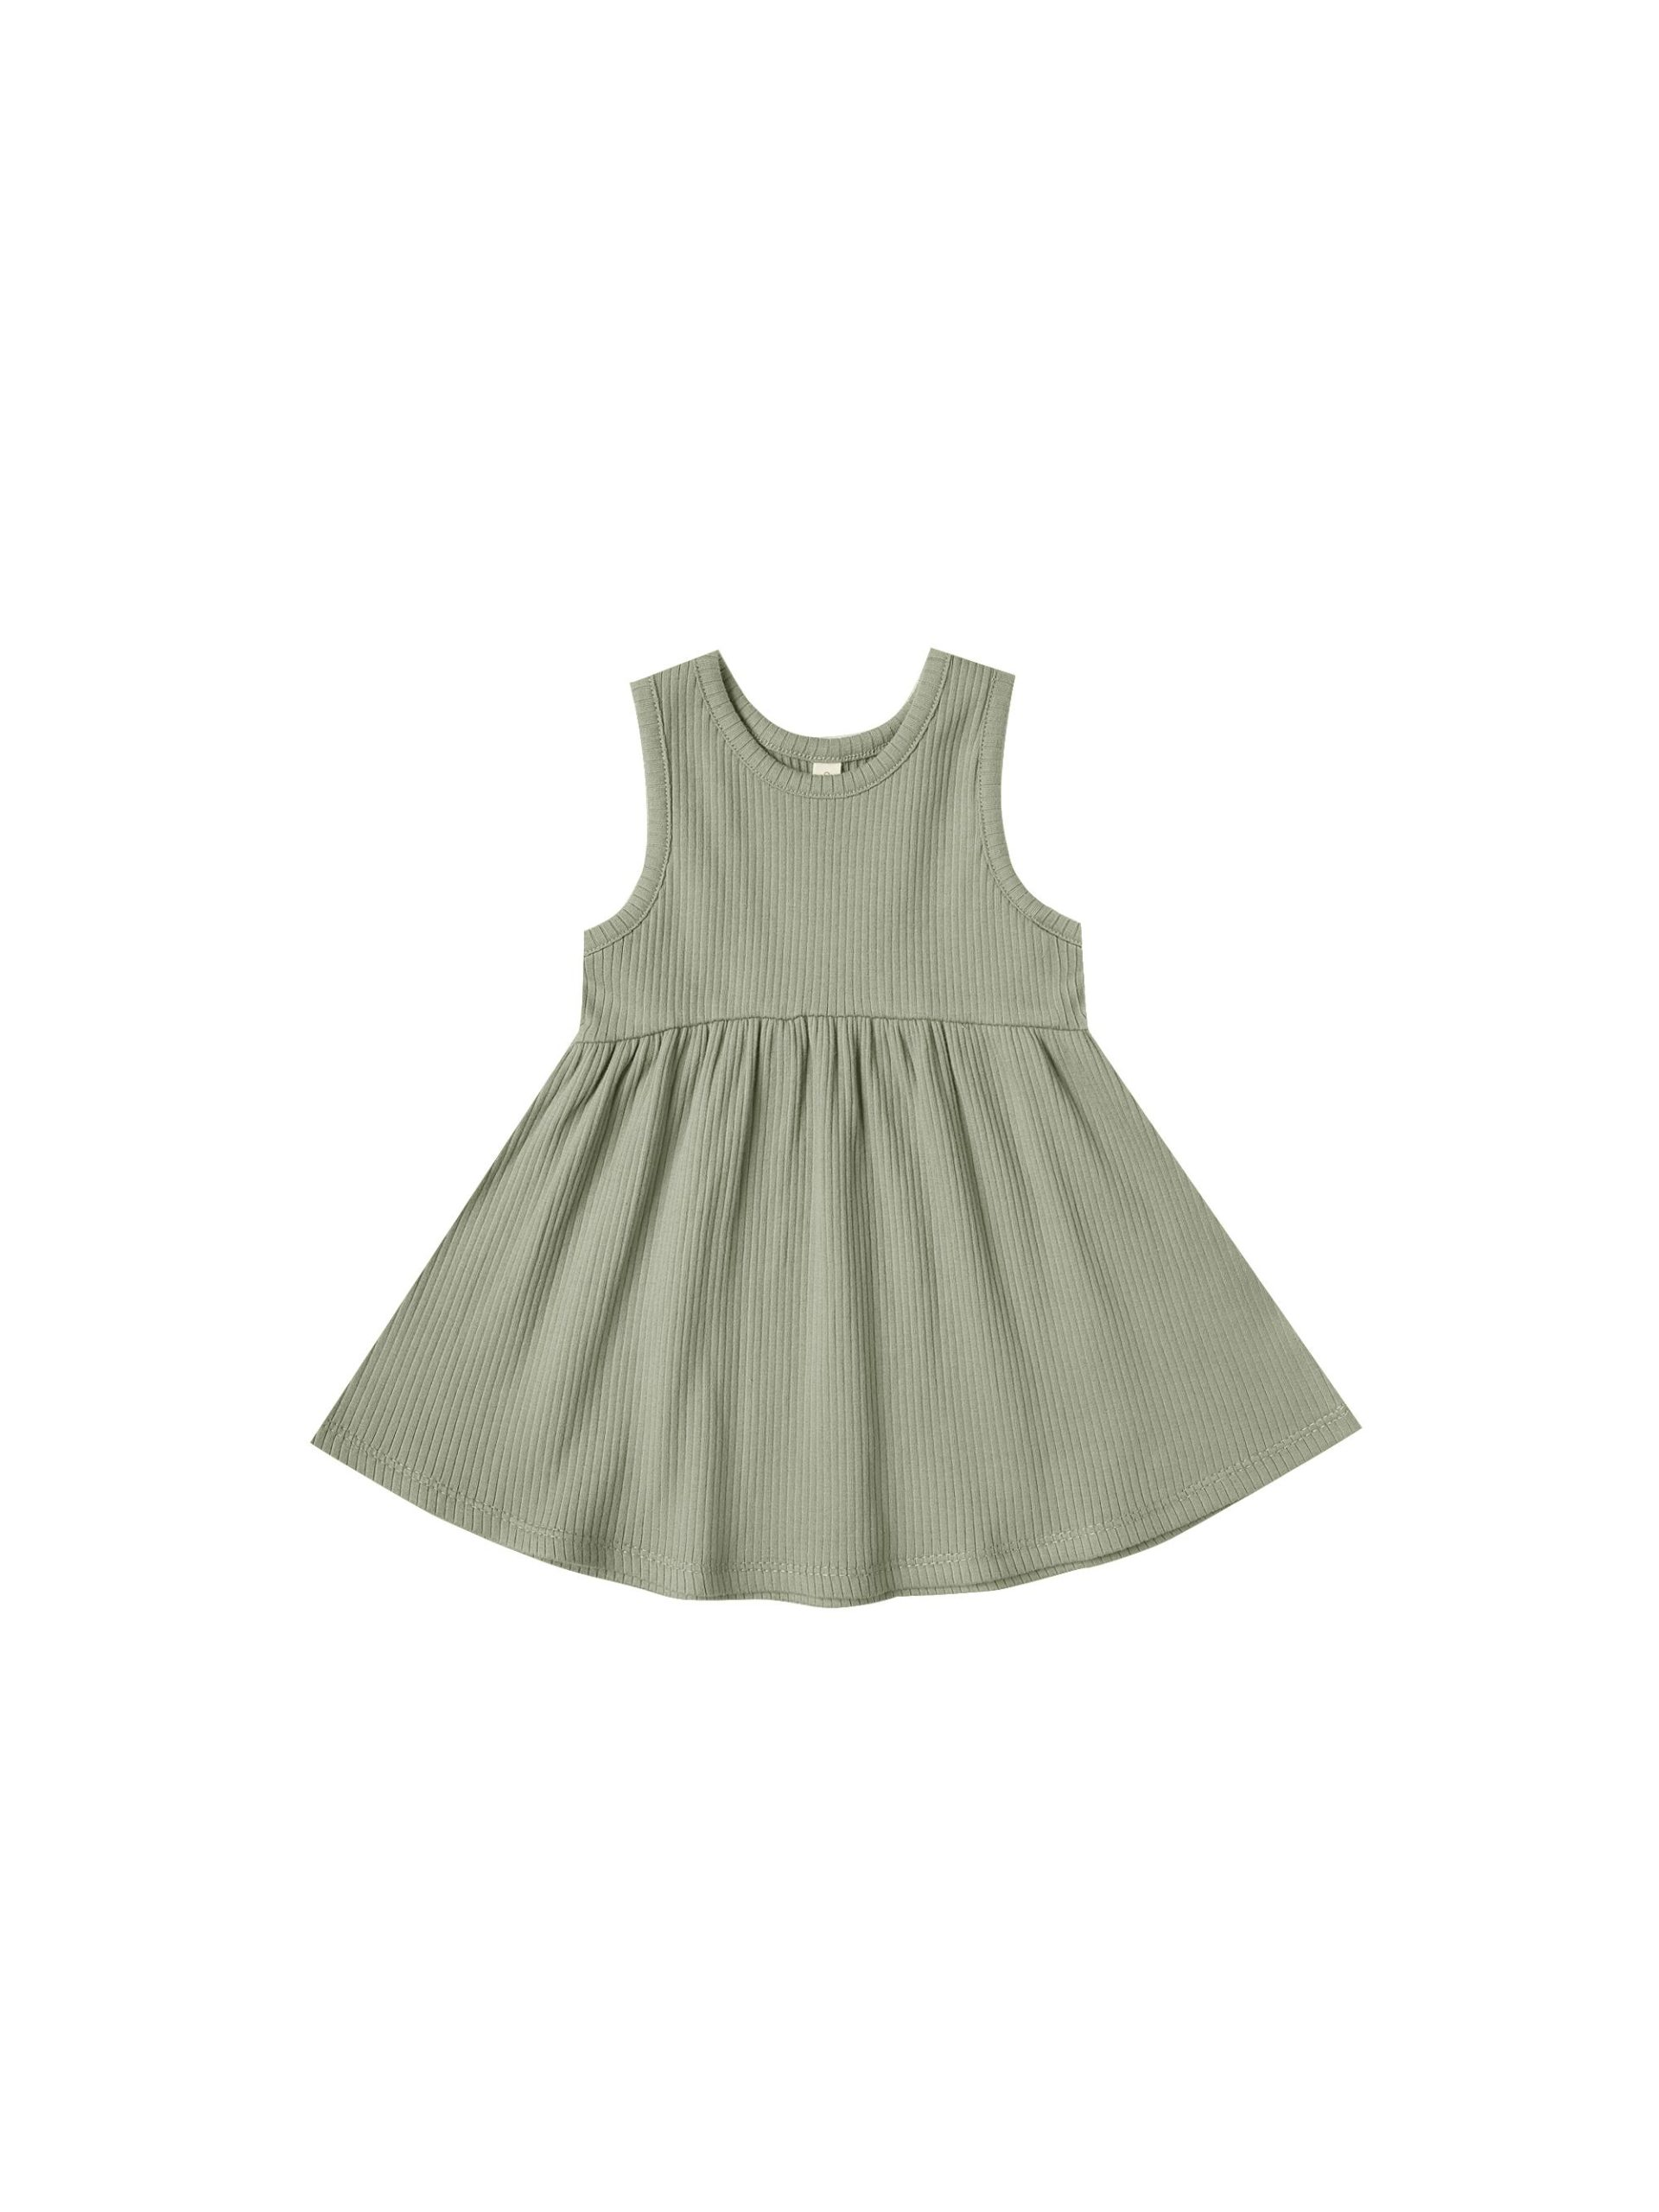 Quincy Mae Ribbed Tank Dress (moss)